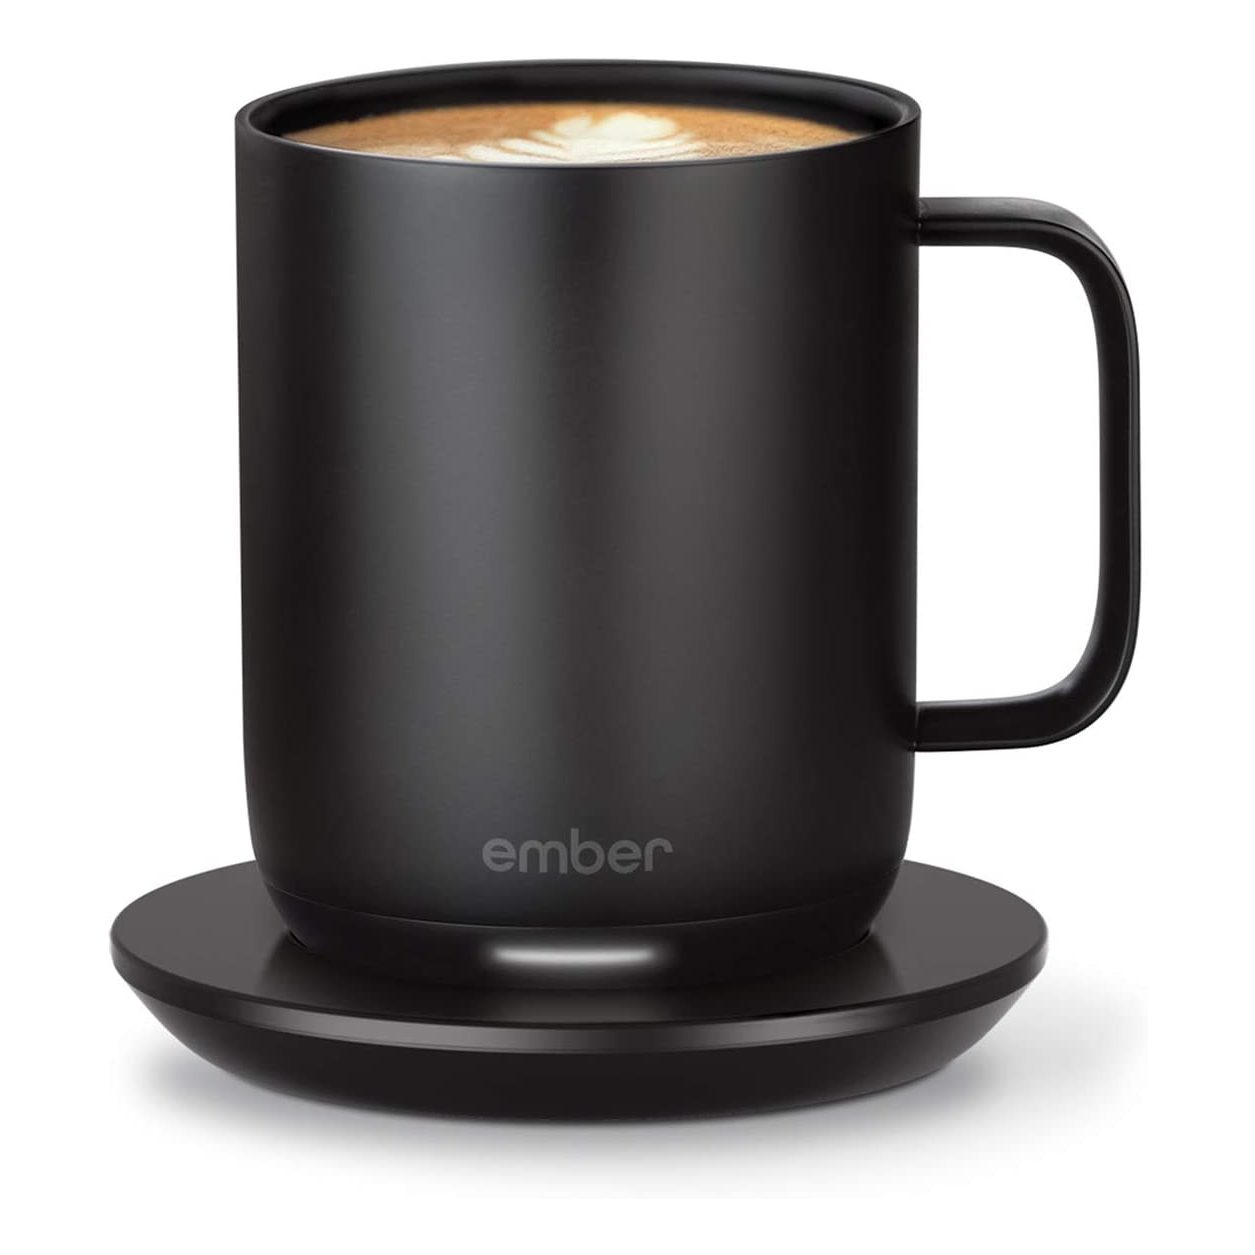 Ember Temperature Control Smart Mug 2